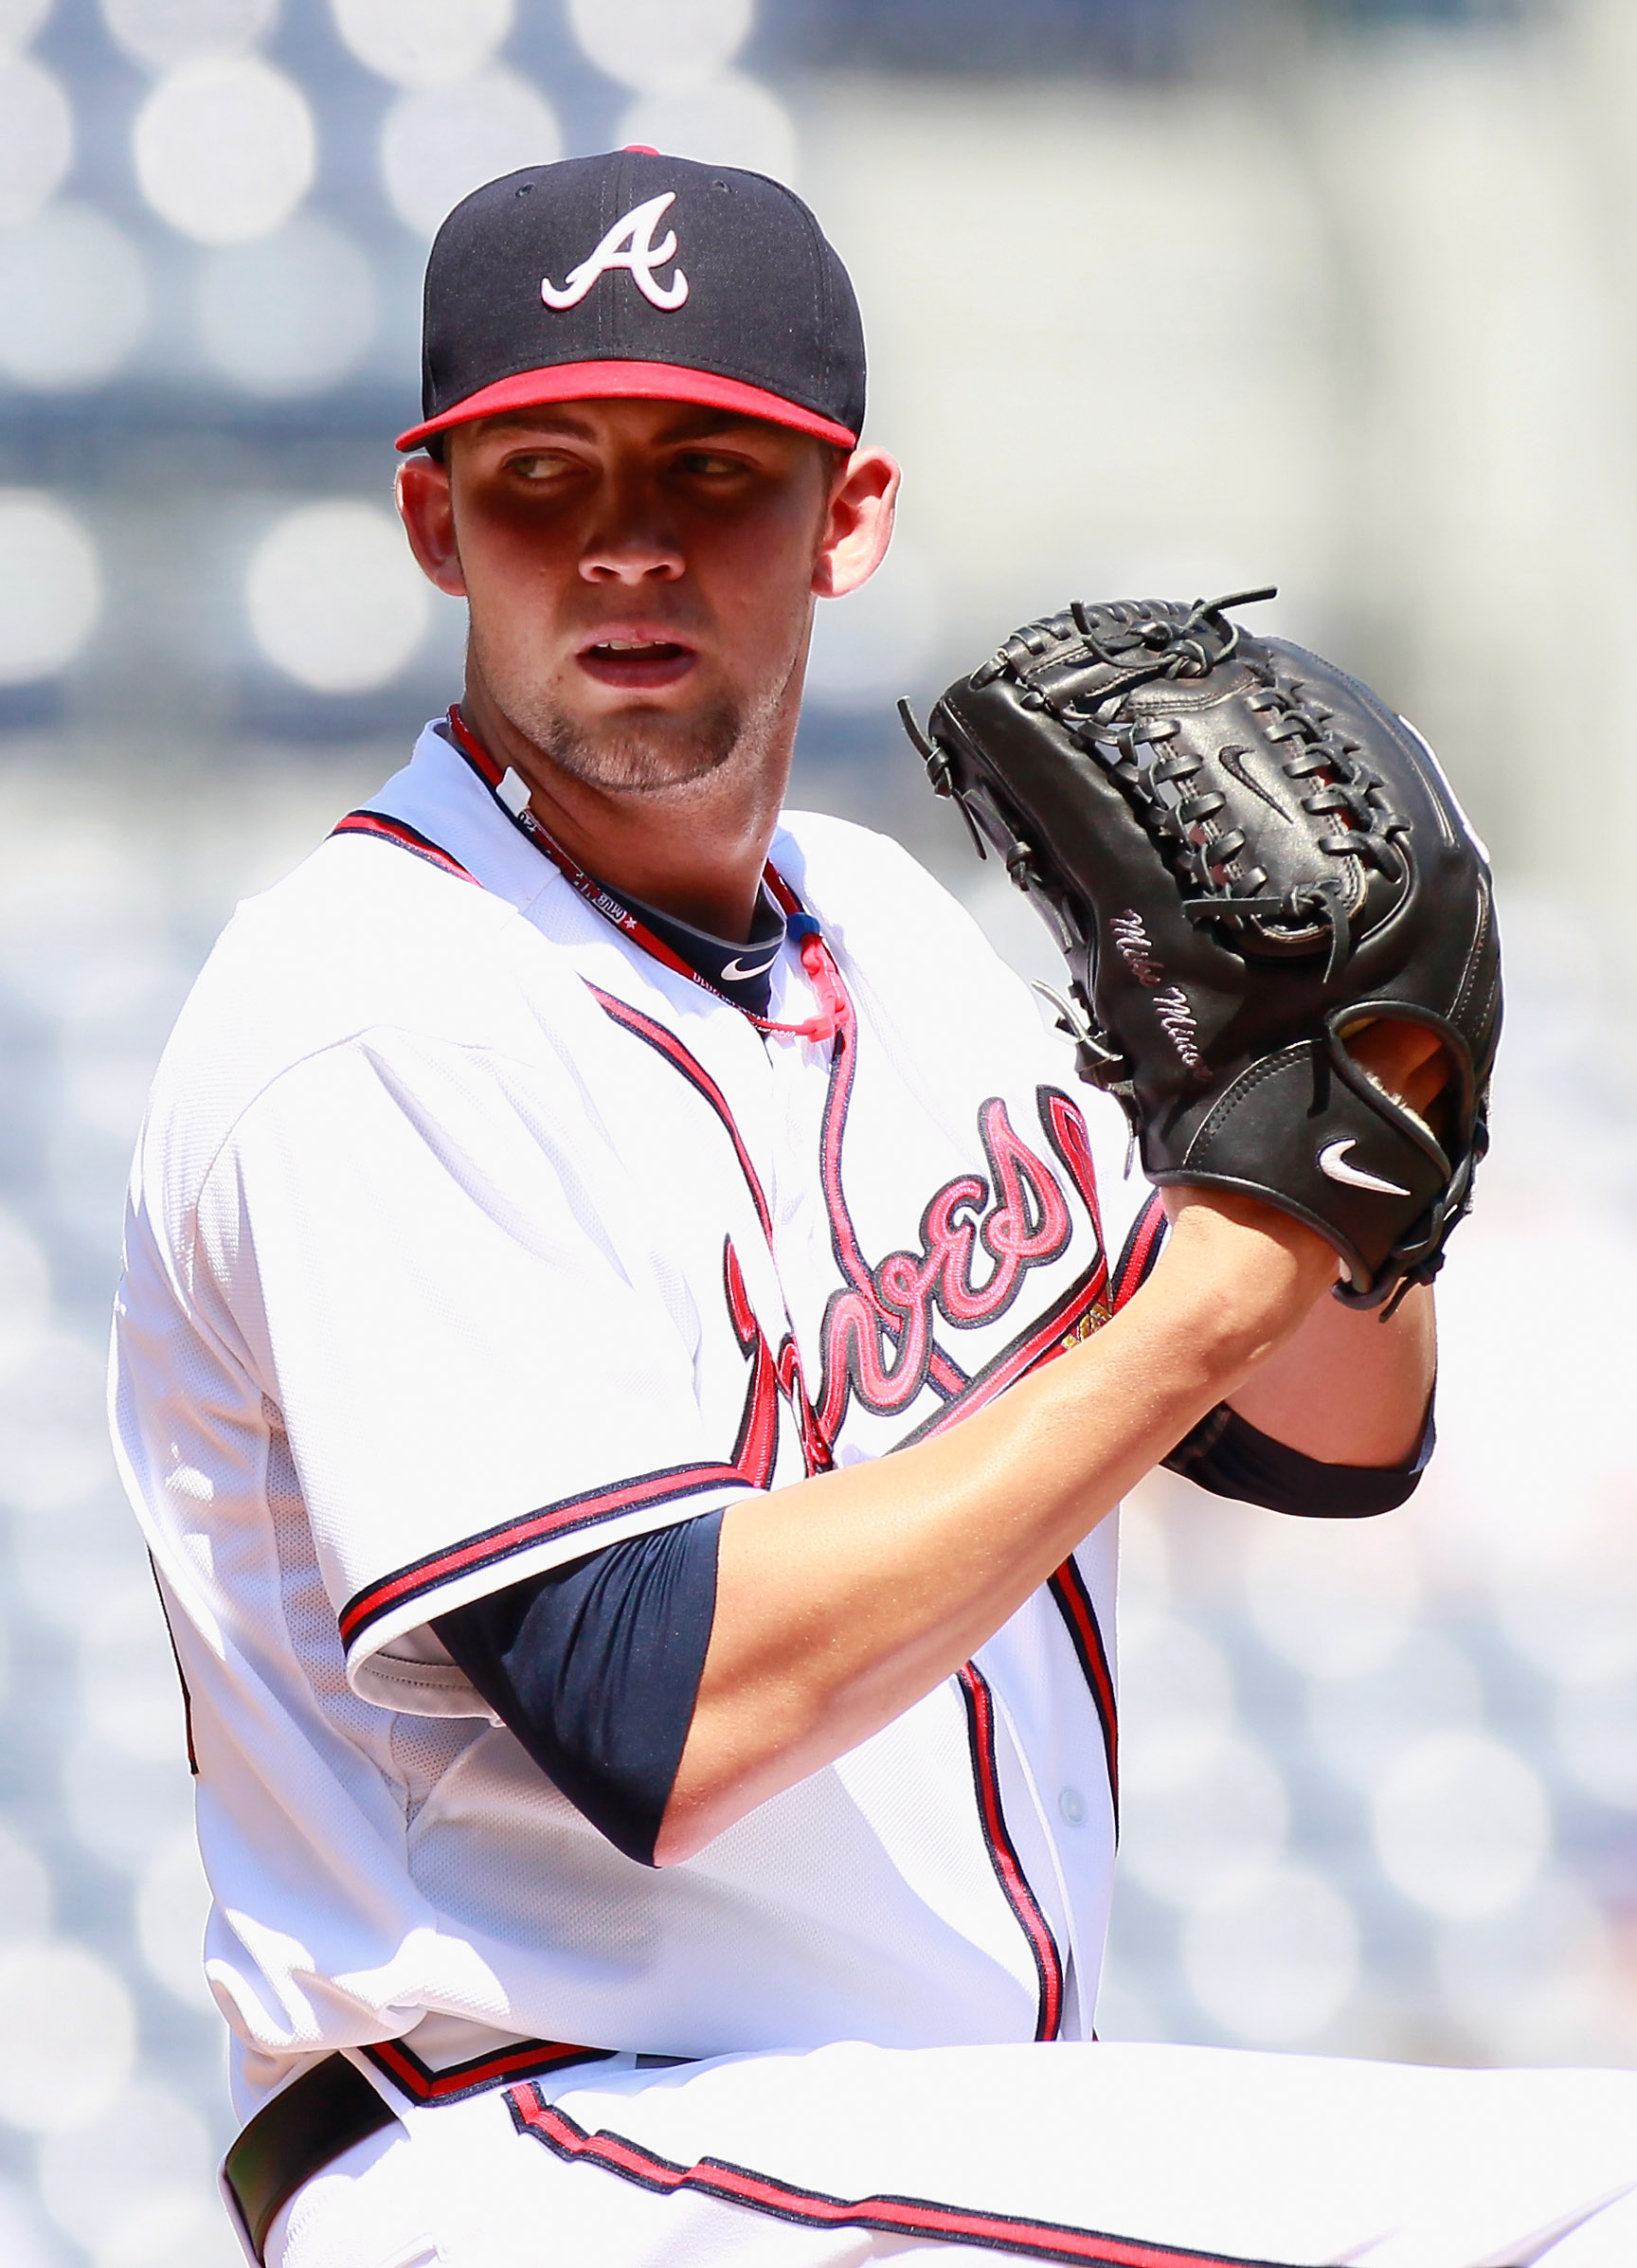 ATLANTA - SEPTEMBER 15:  Starting pitcher Mike Minor #56 of the Atlanta Braves pitches against the Washington Nationals at Turner Field on September 15, 2010 in Atlanta, Georgia.  (Photo by Kevin C. Cox/Getty Images)